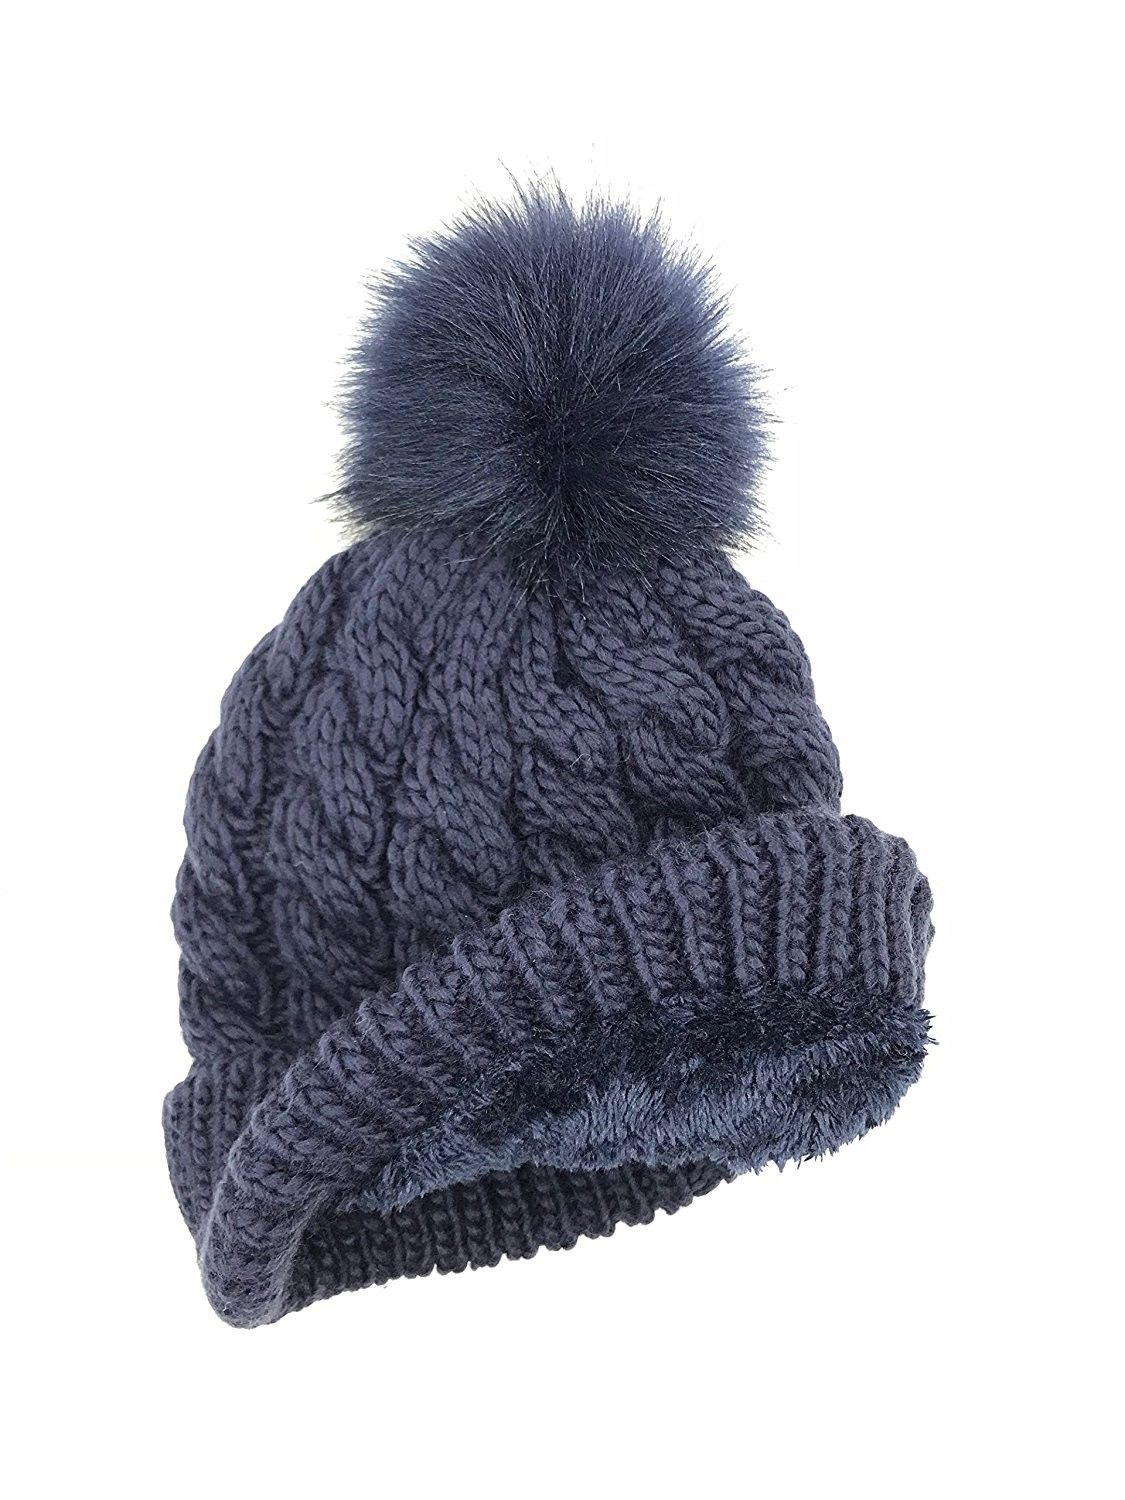 59313861c04 Women Winter Chunky Knit Sherpa Lined Beanie Hat With Faux Fur Pom Pom -  Col.